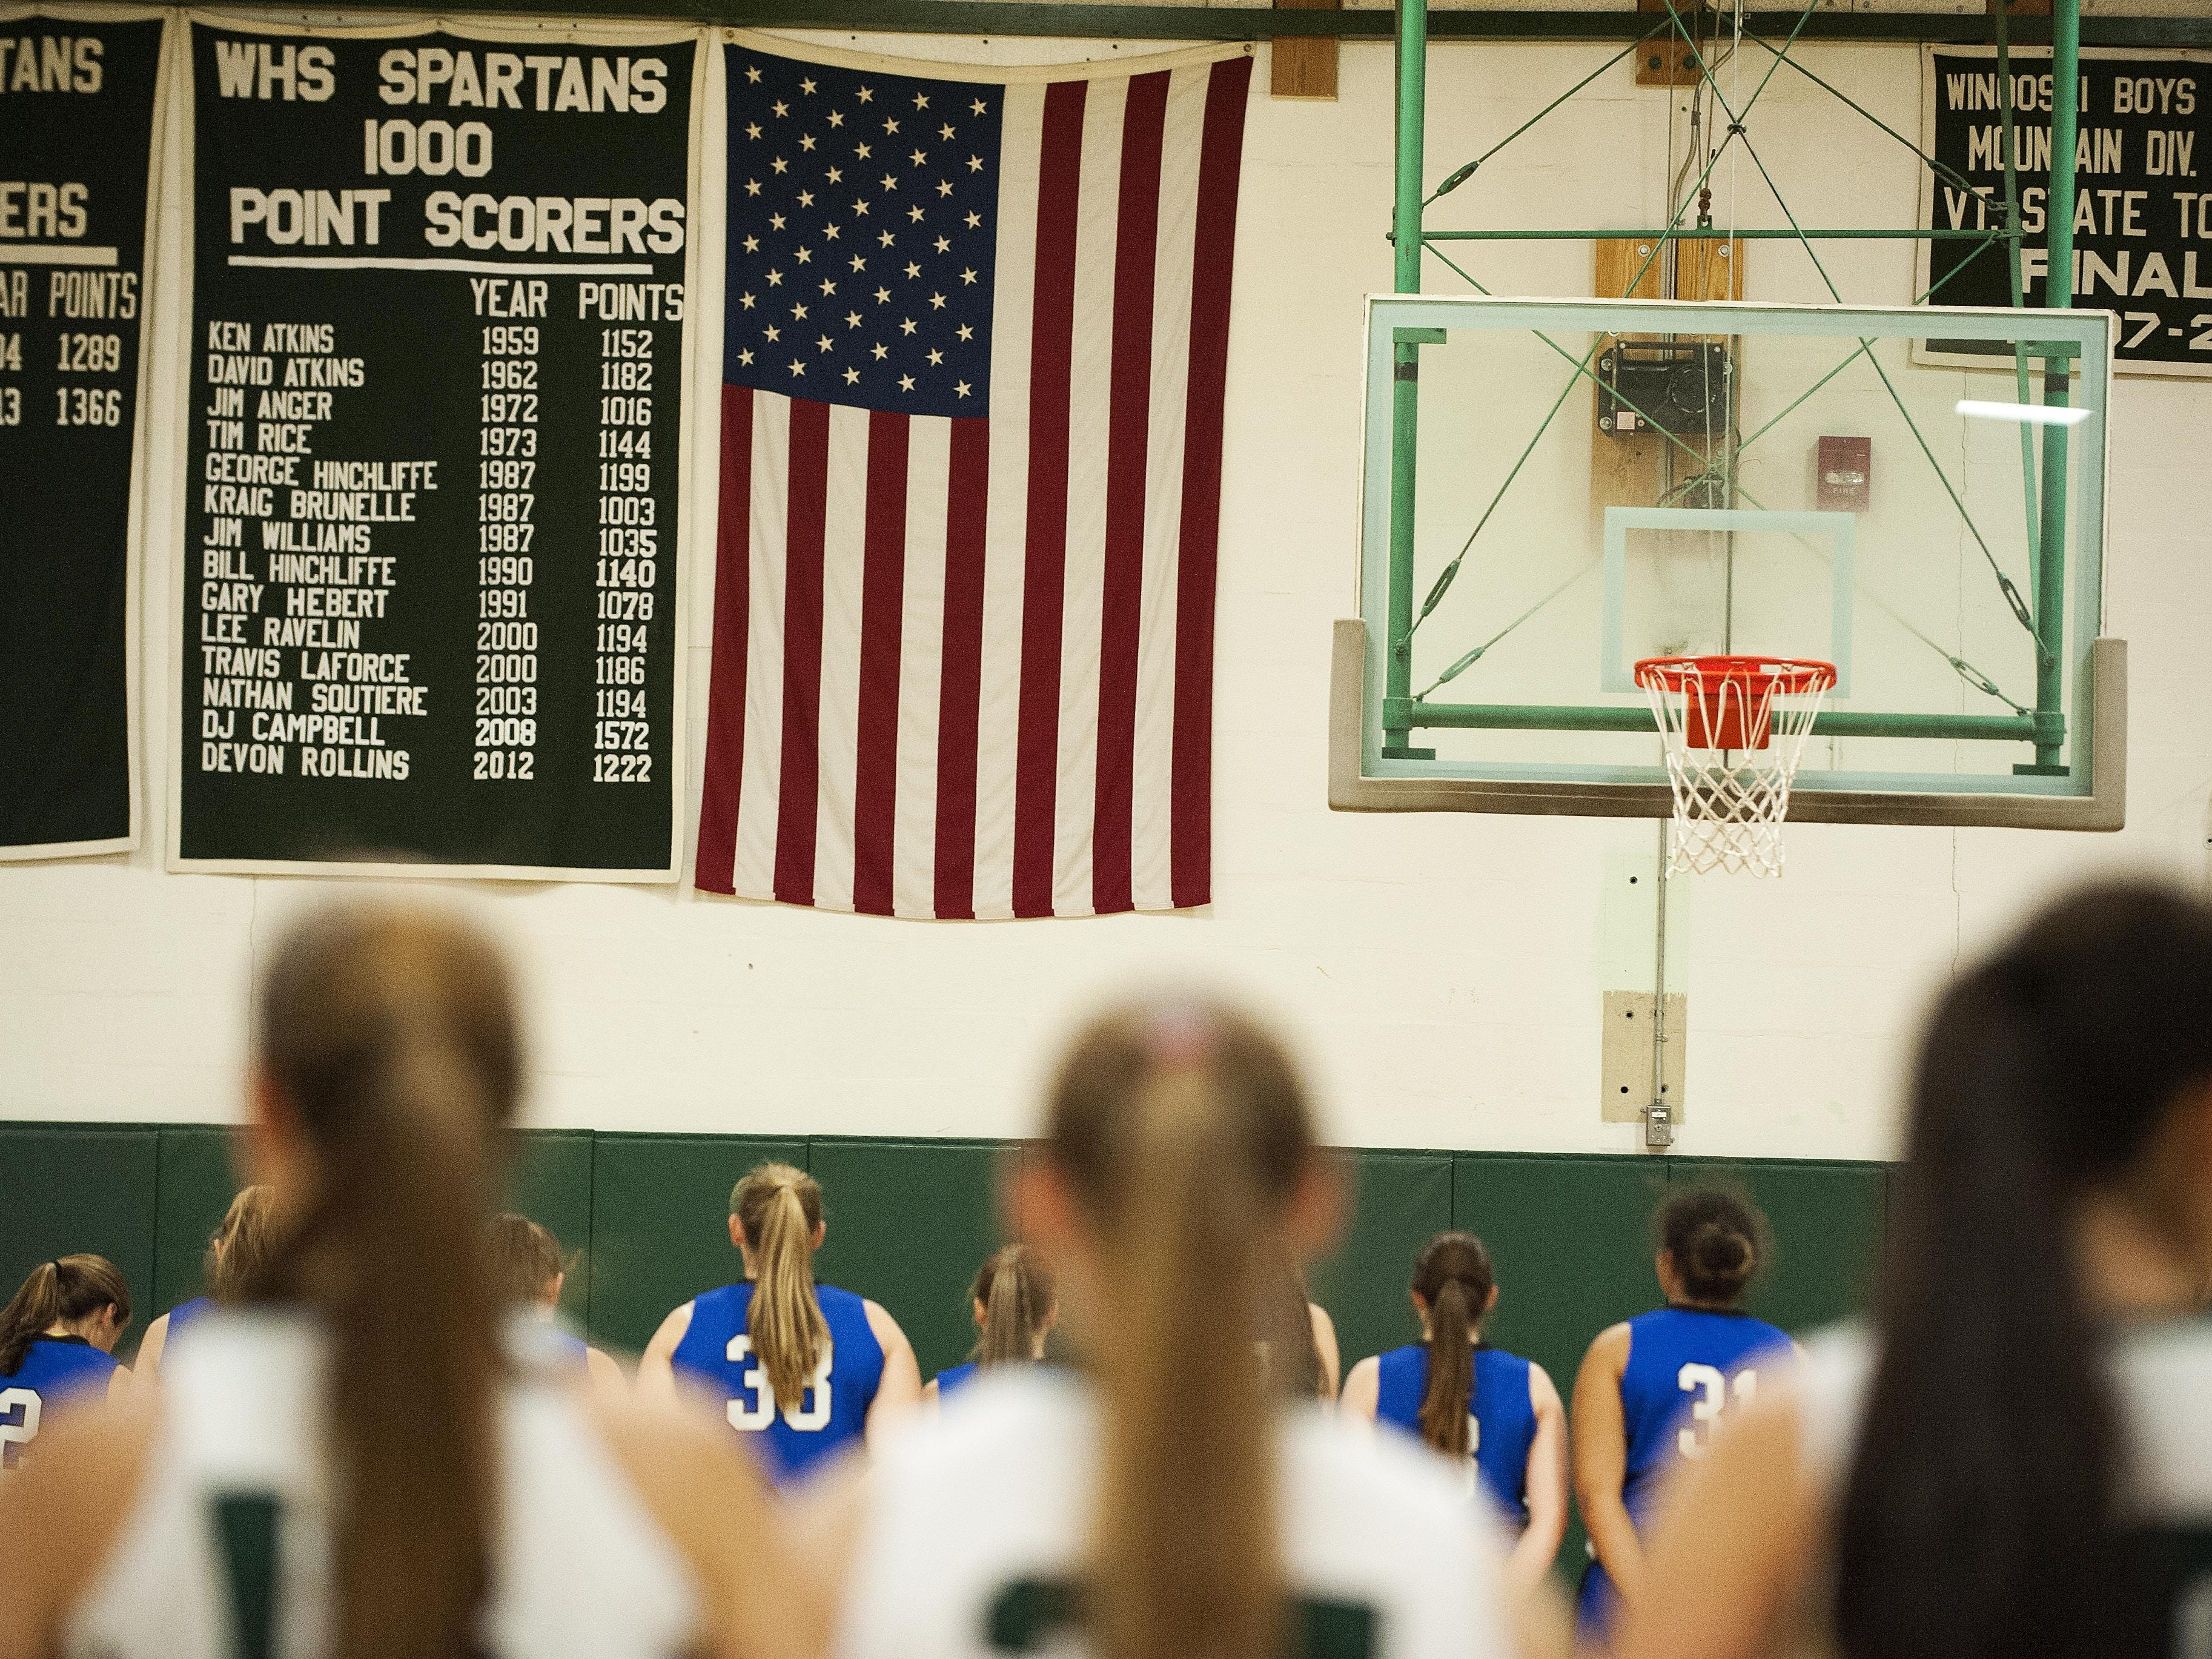 The teams line up to listen to the National Anthem before the start of the girls basketball game between Vergennes and Winooski at Winooski High School on Wednesday night.